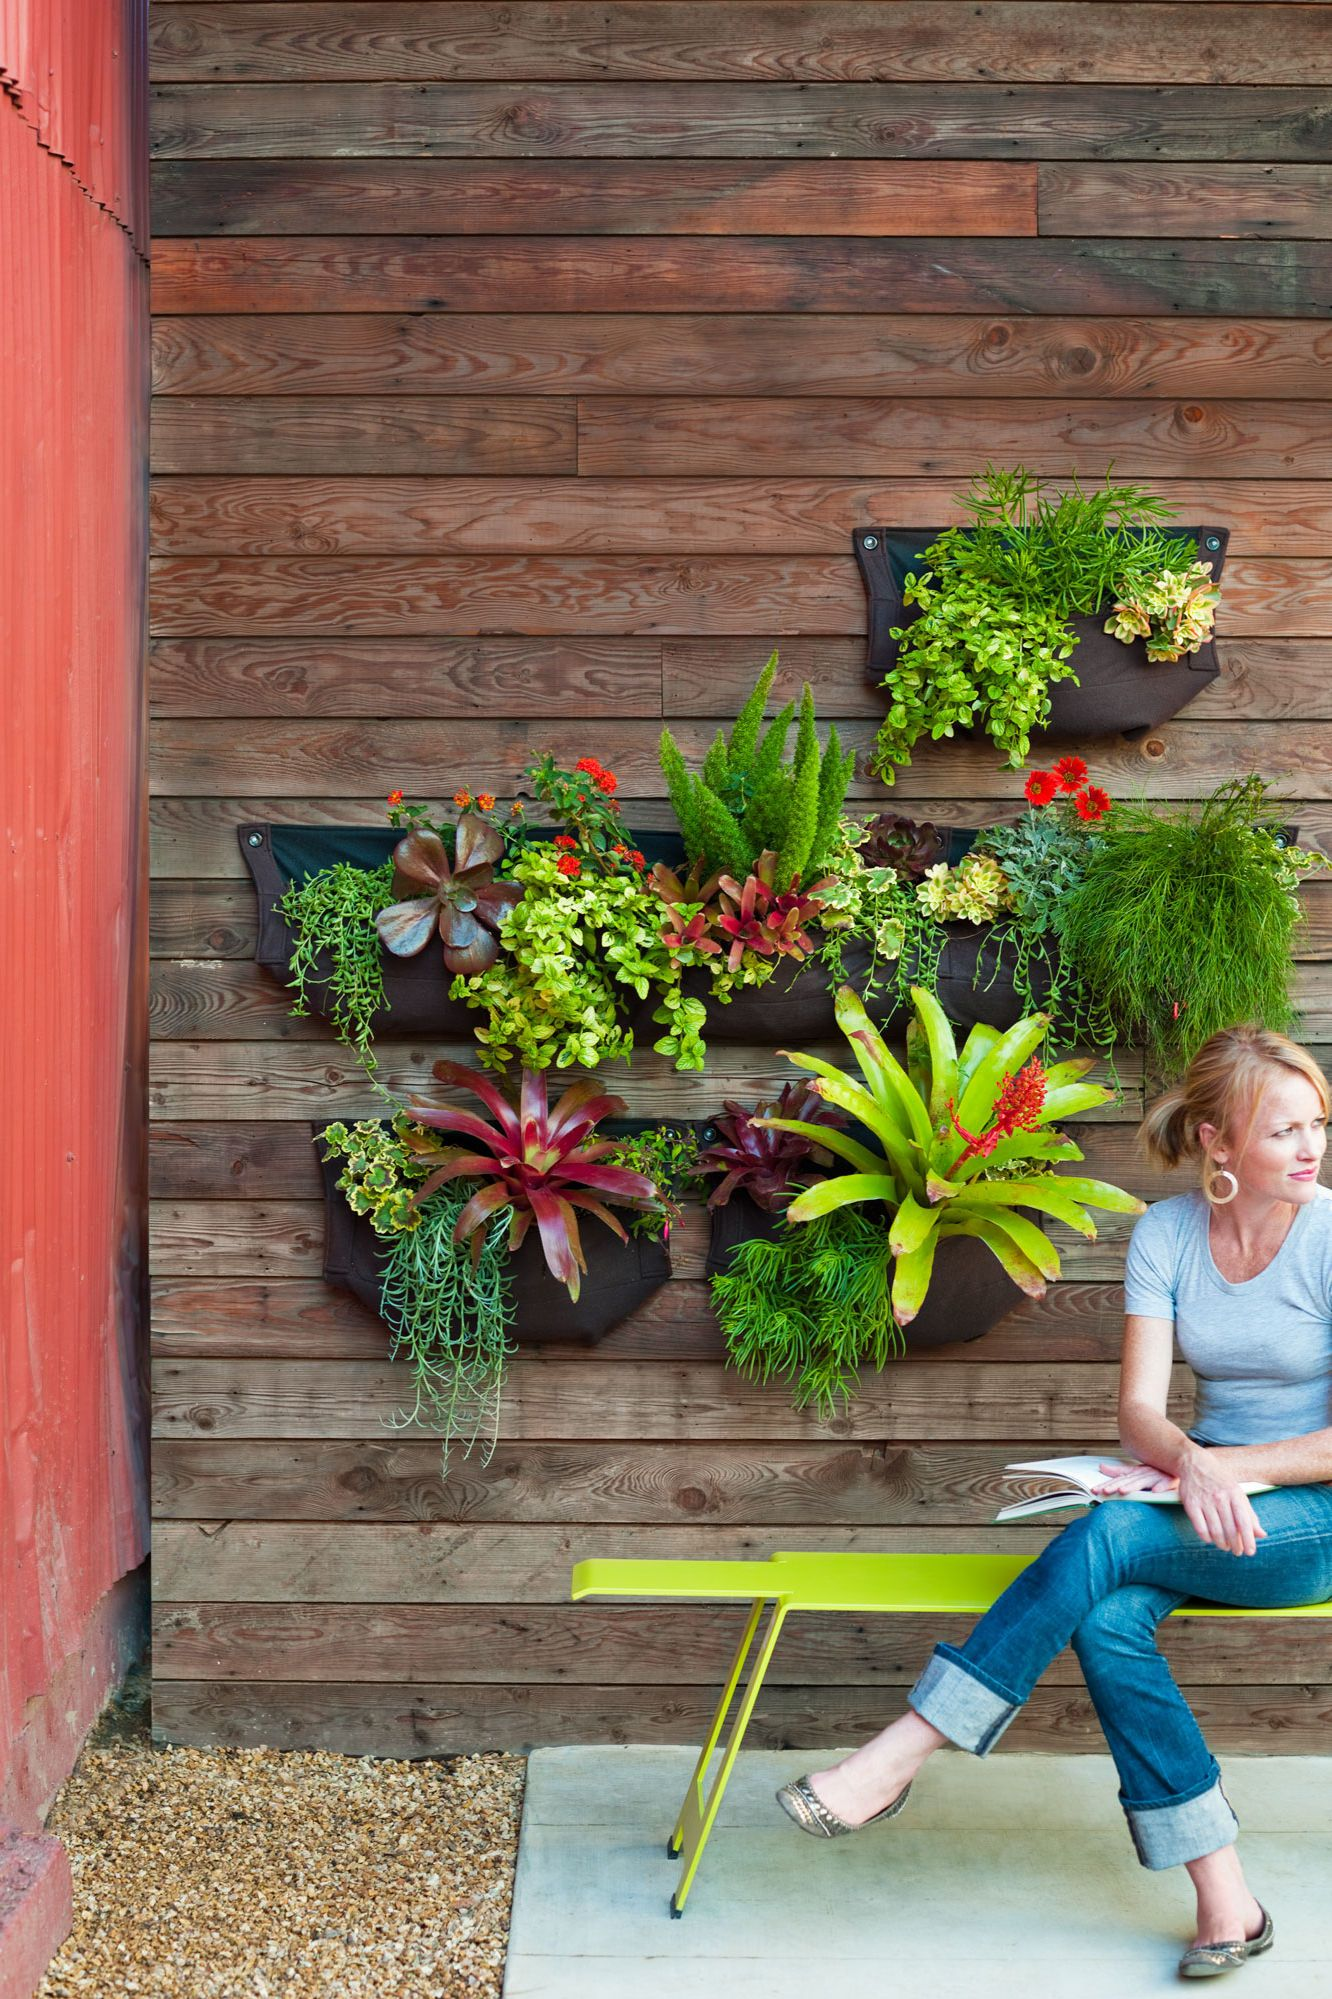 How To Make A Hanging Garden Vertical Succulent Gardens Diy Garden Projects Garden Projects